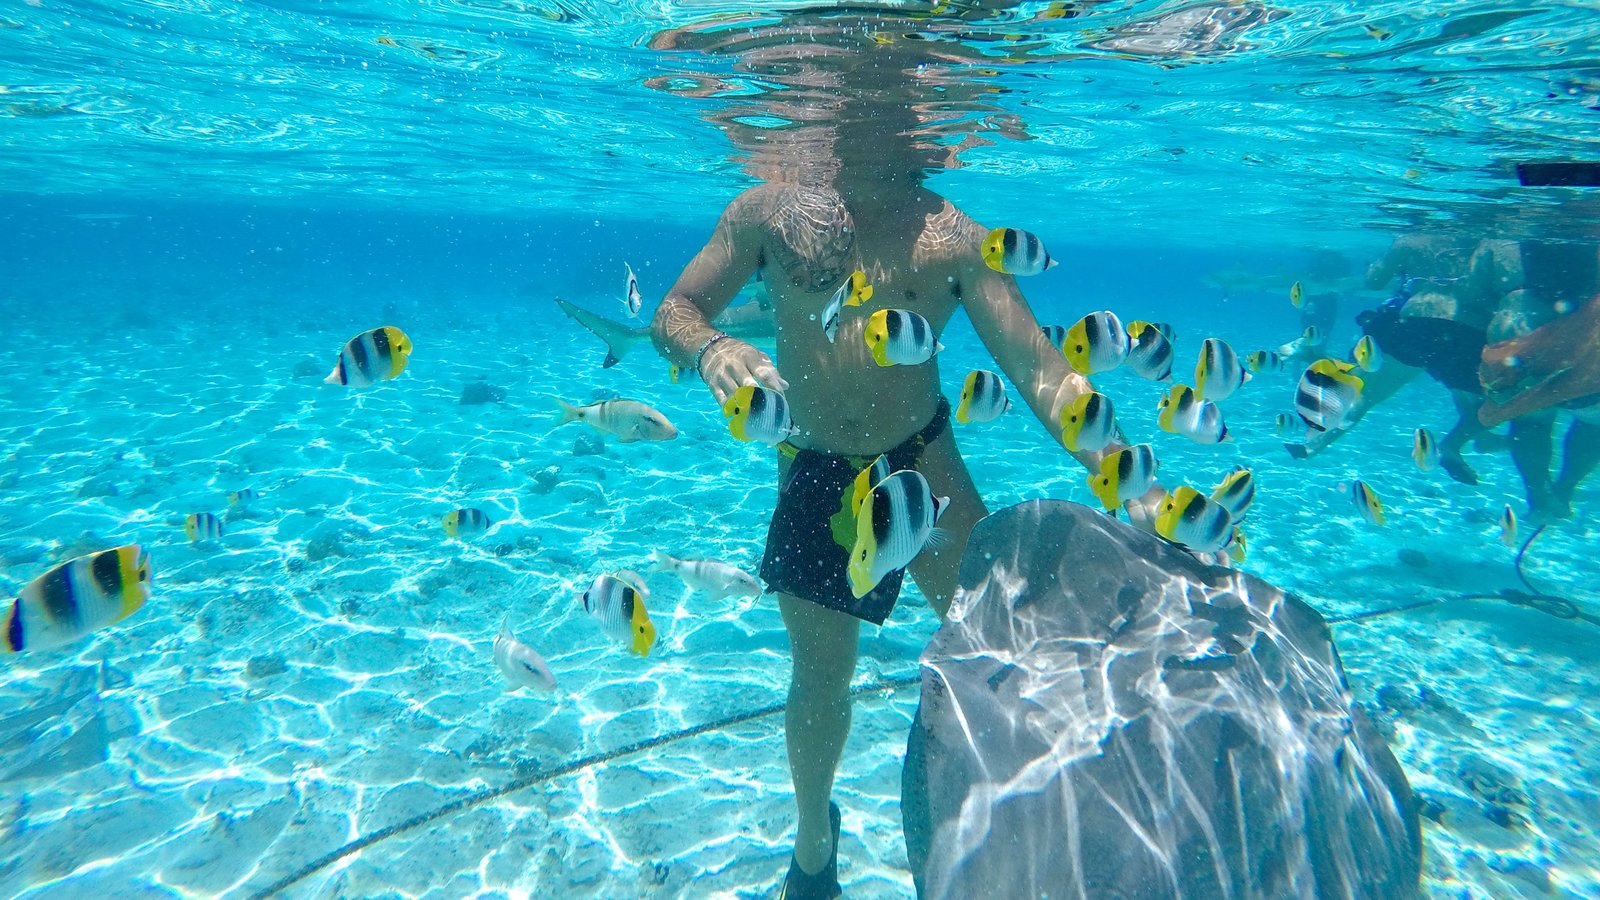 Bora Bora which includes swimming and marine life as well as an individual male